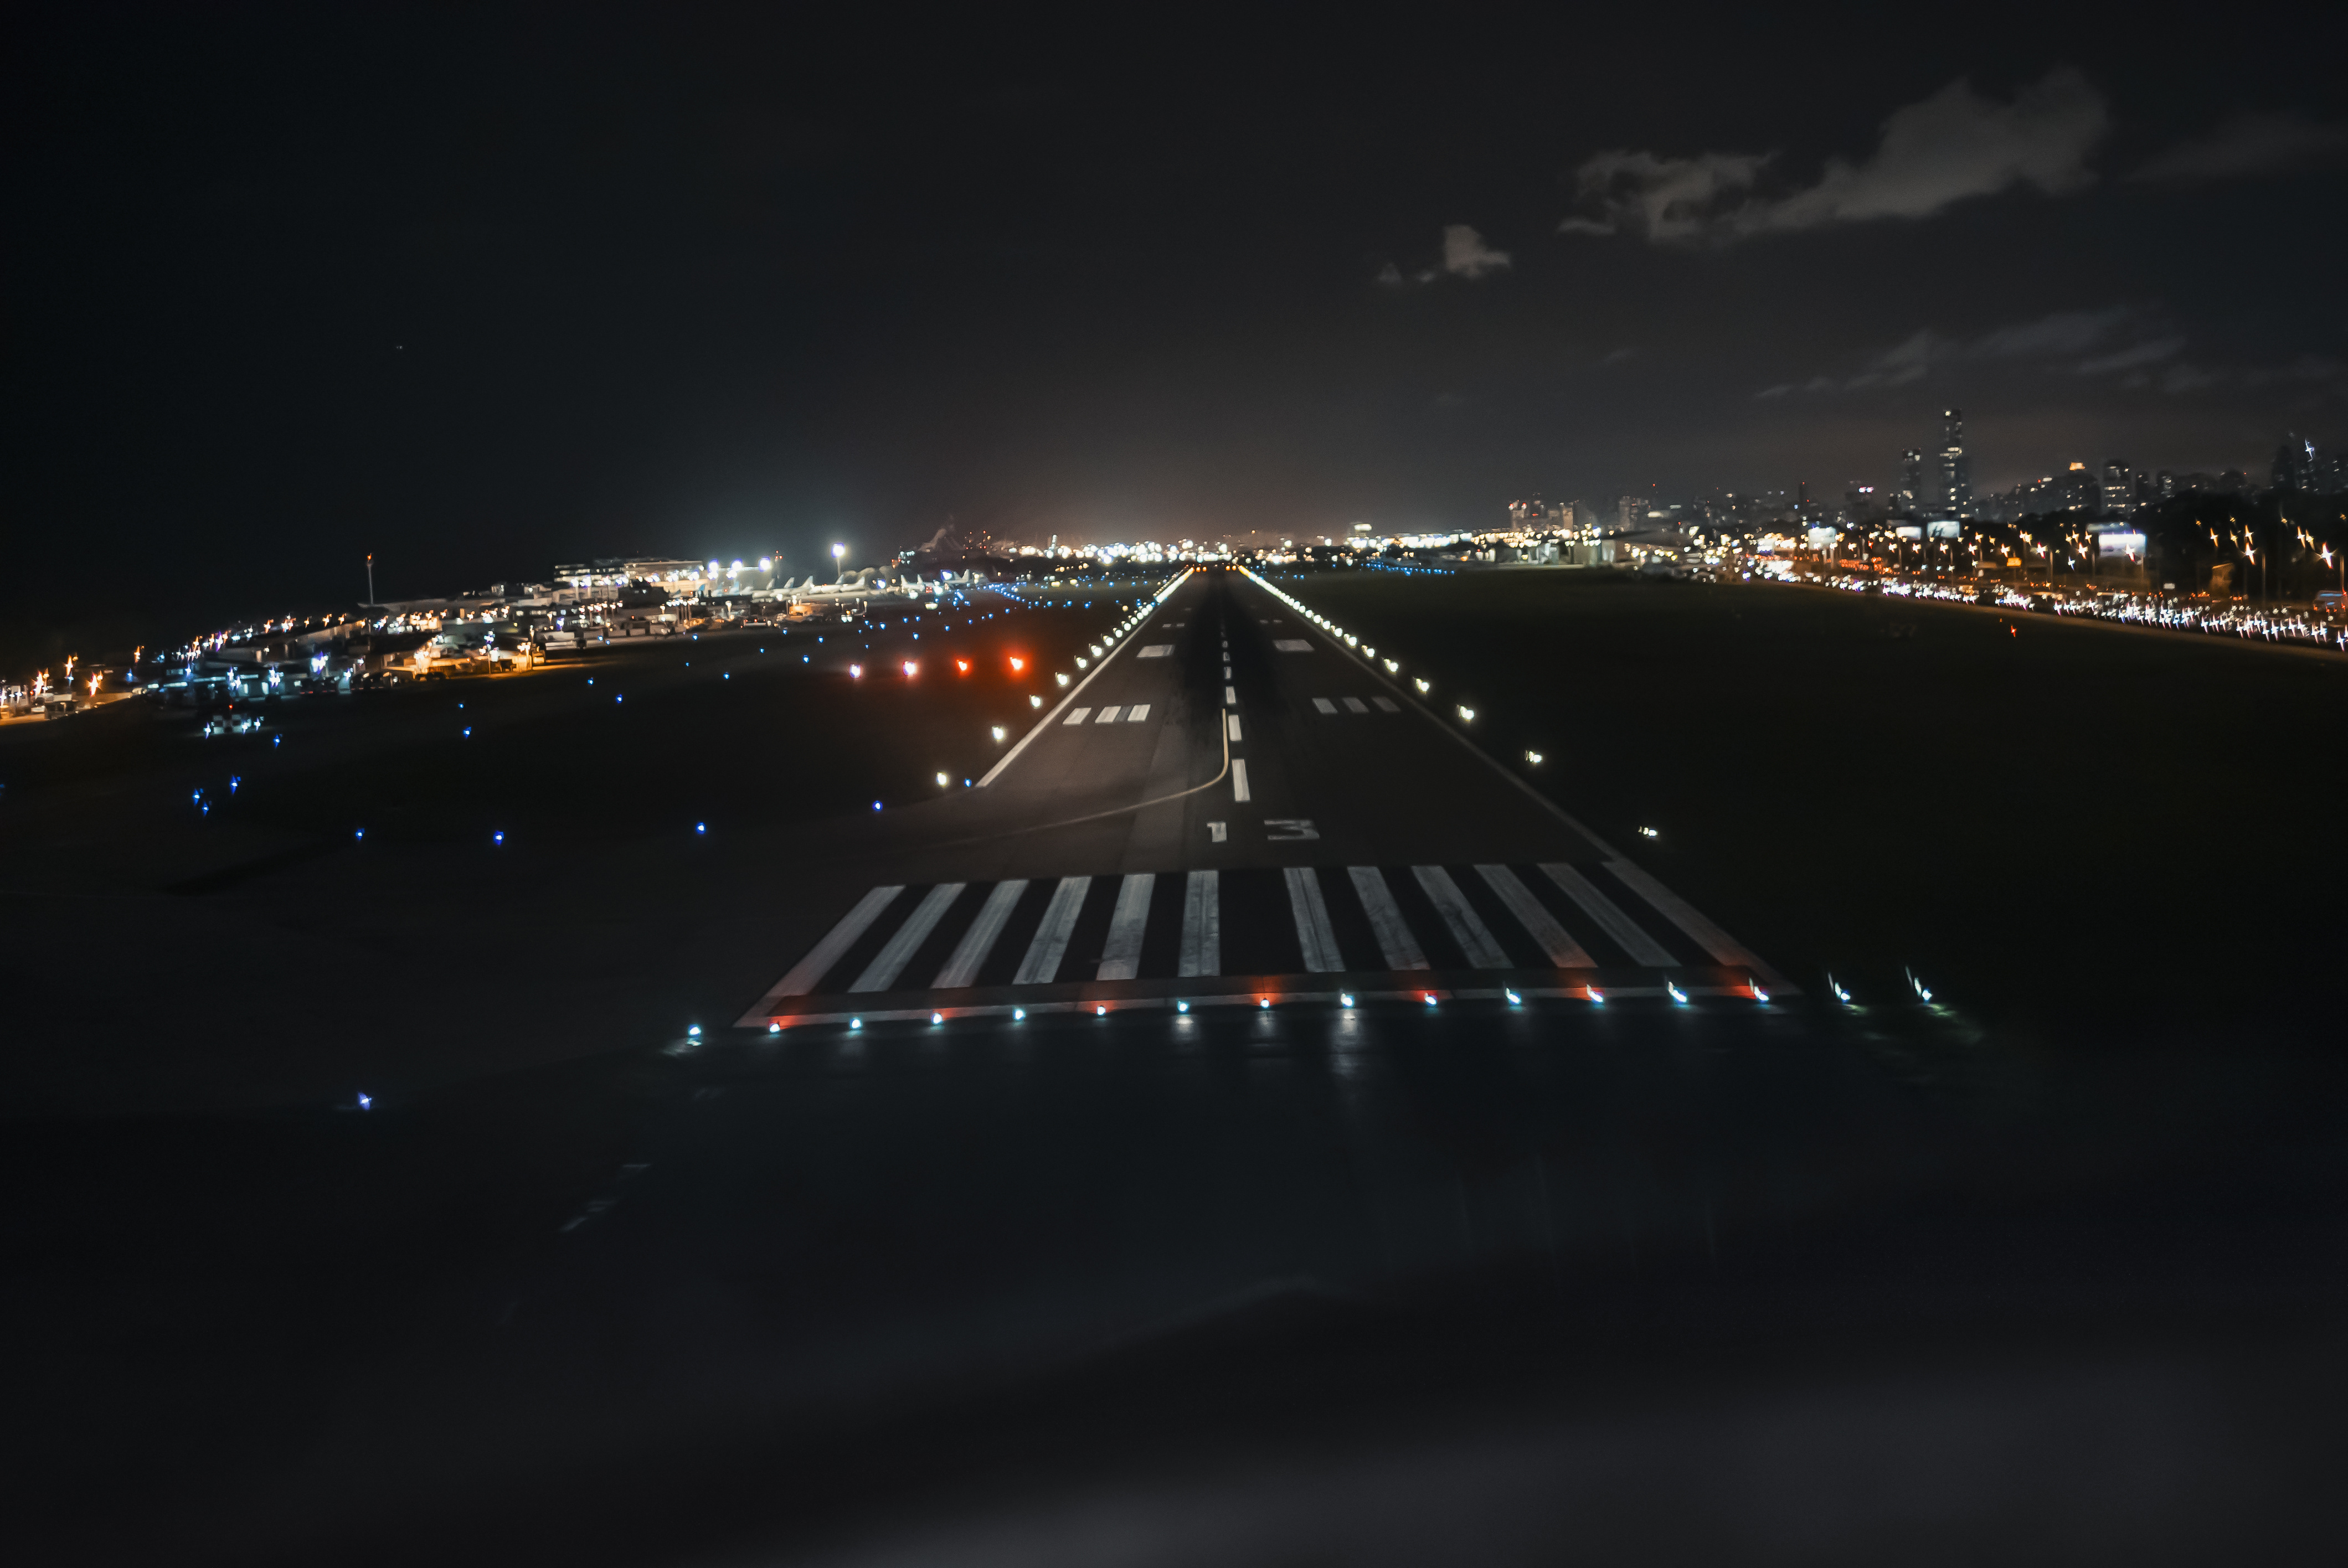 Northeast is ready to take on highly specialized lighting projects such as airport lighting and specific electrical needs for airport hangers. Our crews are experienced in delivering results with proper procedures, while helping to maintain active operations of the runway.